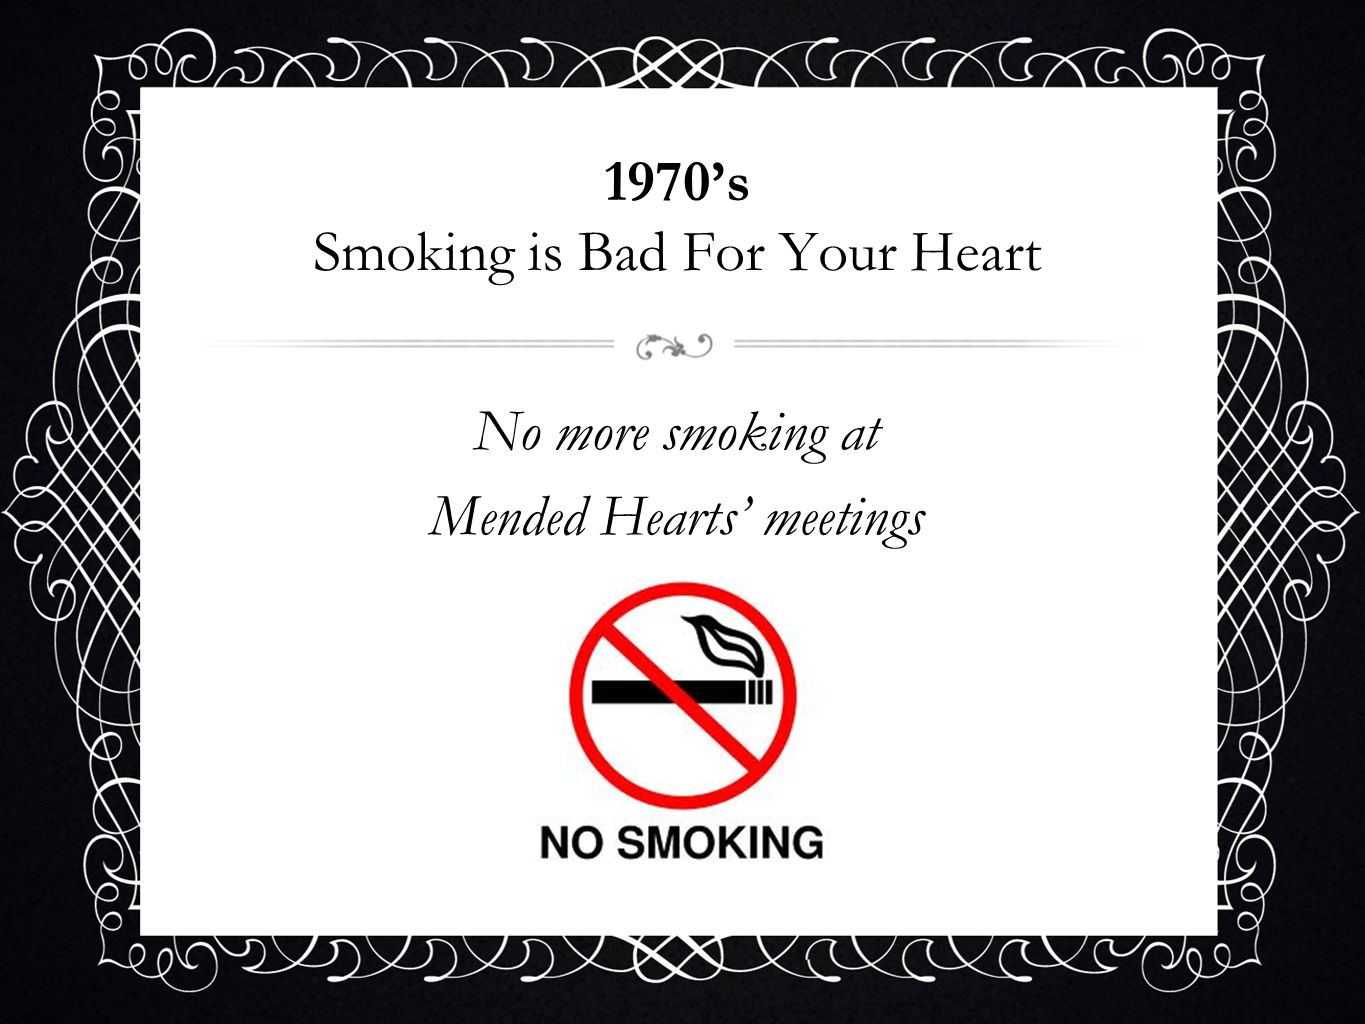 1970's Smoking is Bad For Your Heart